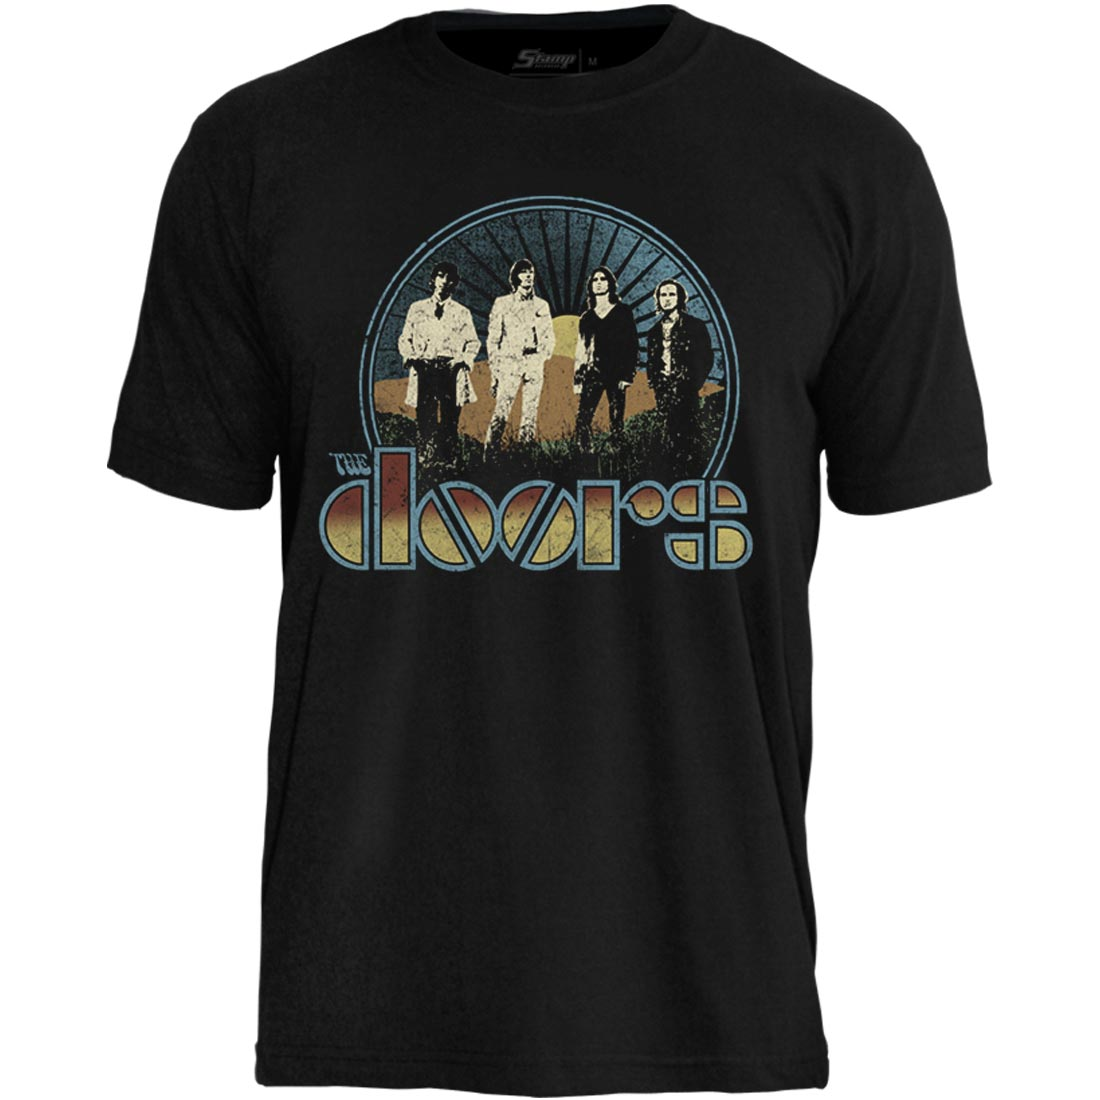 Camiseta The Doors Fild Vintage